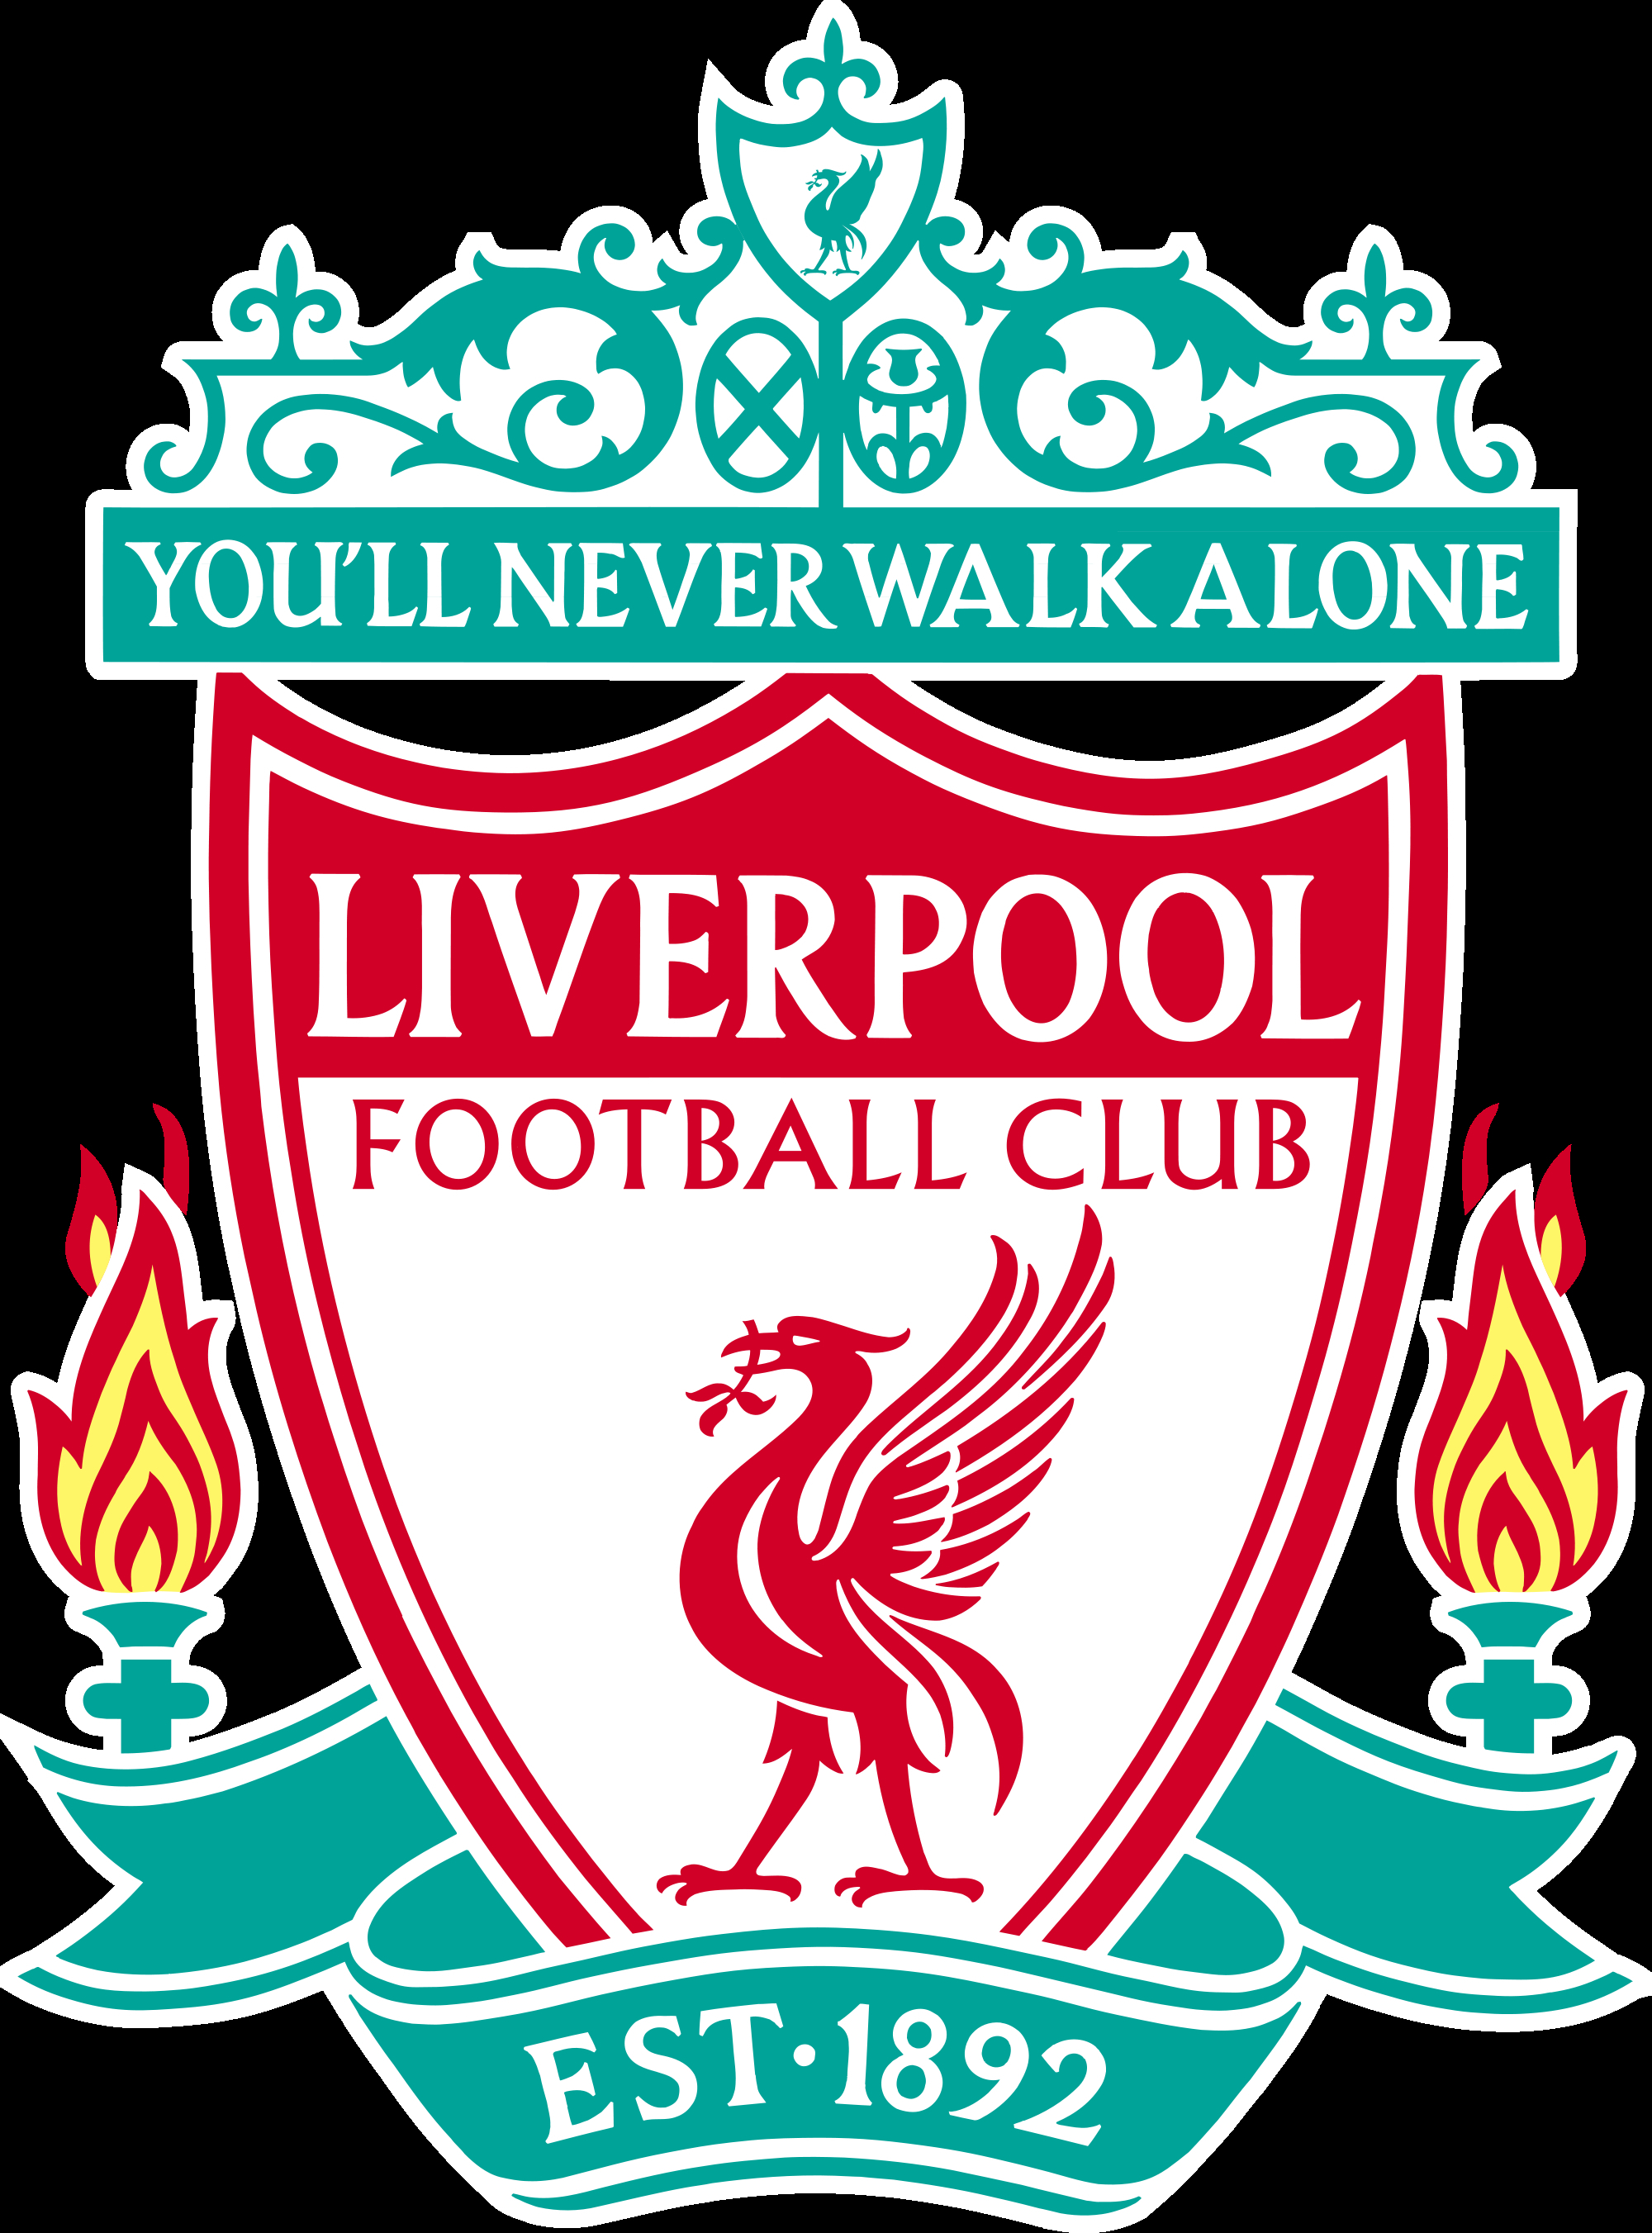 emblems Liverpool FC logos HD Wallpaper